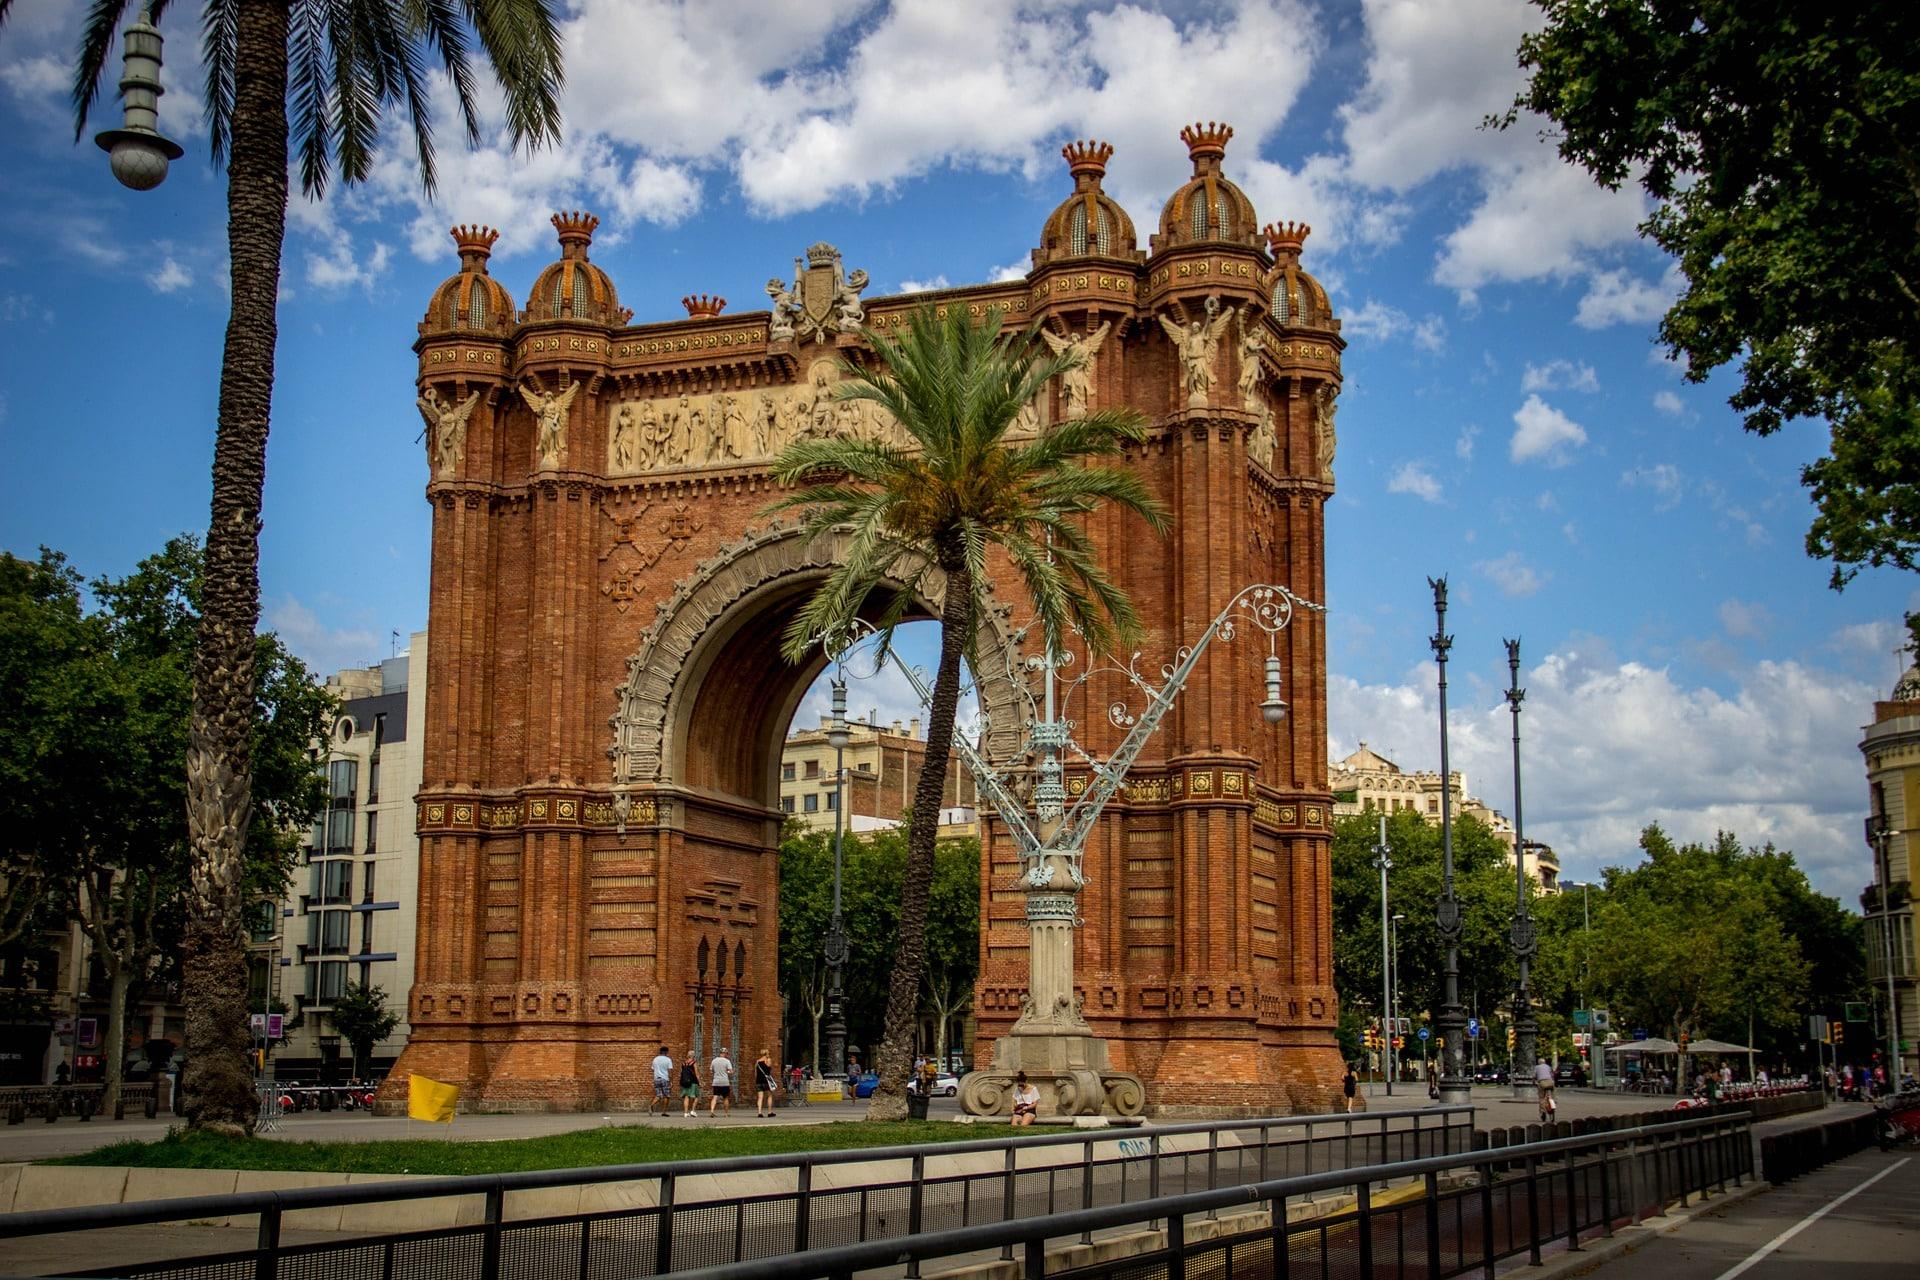 BCN, Metropolitan area, Catalonia, Spain